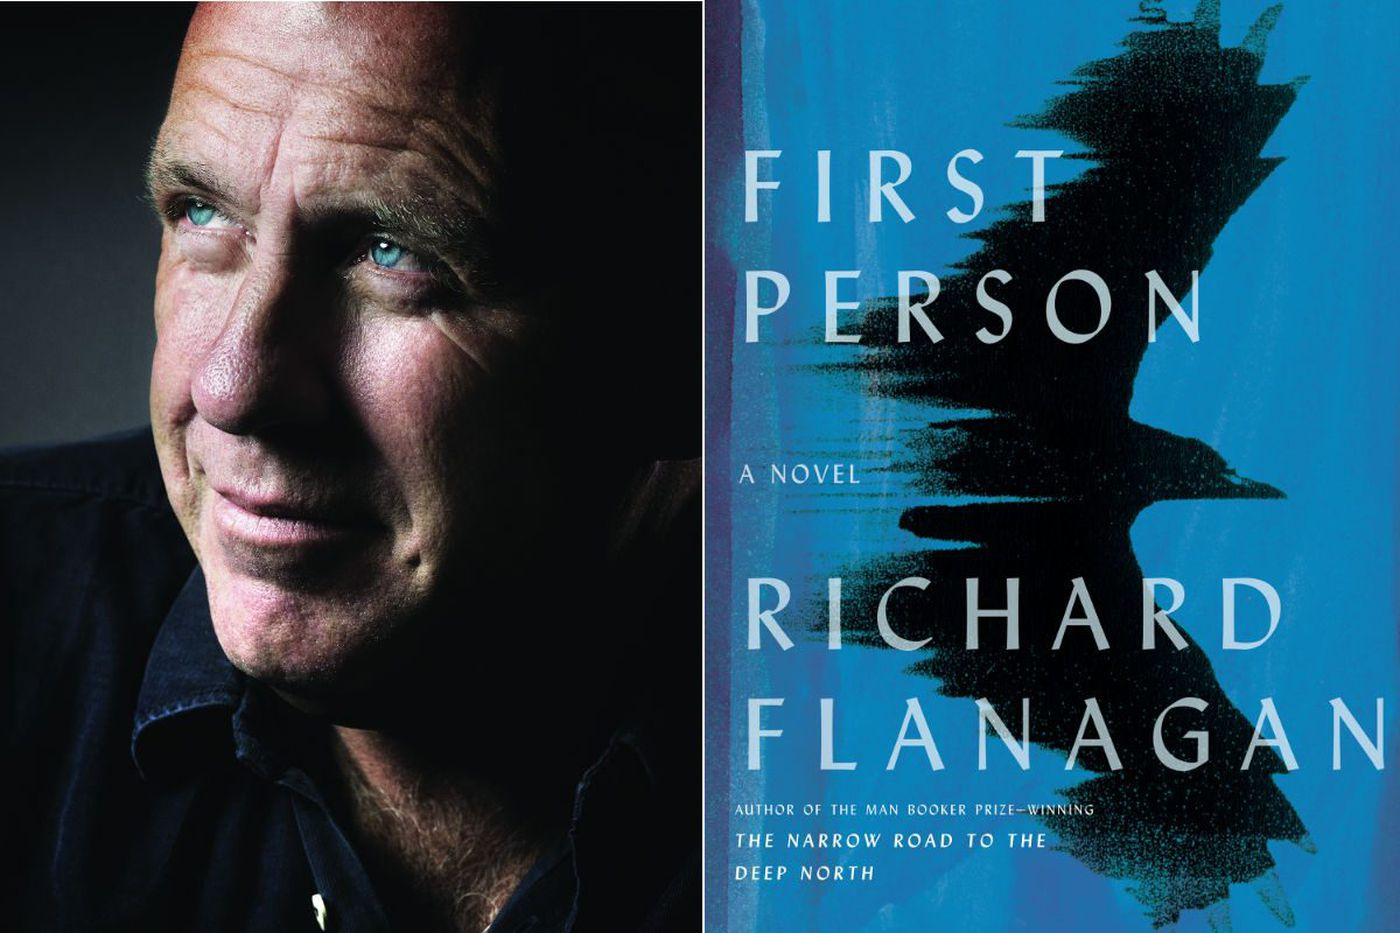 Richard Flanagan's 'First Person': A ghostwriter who fights lies with lies